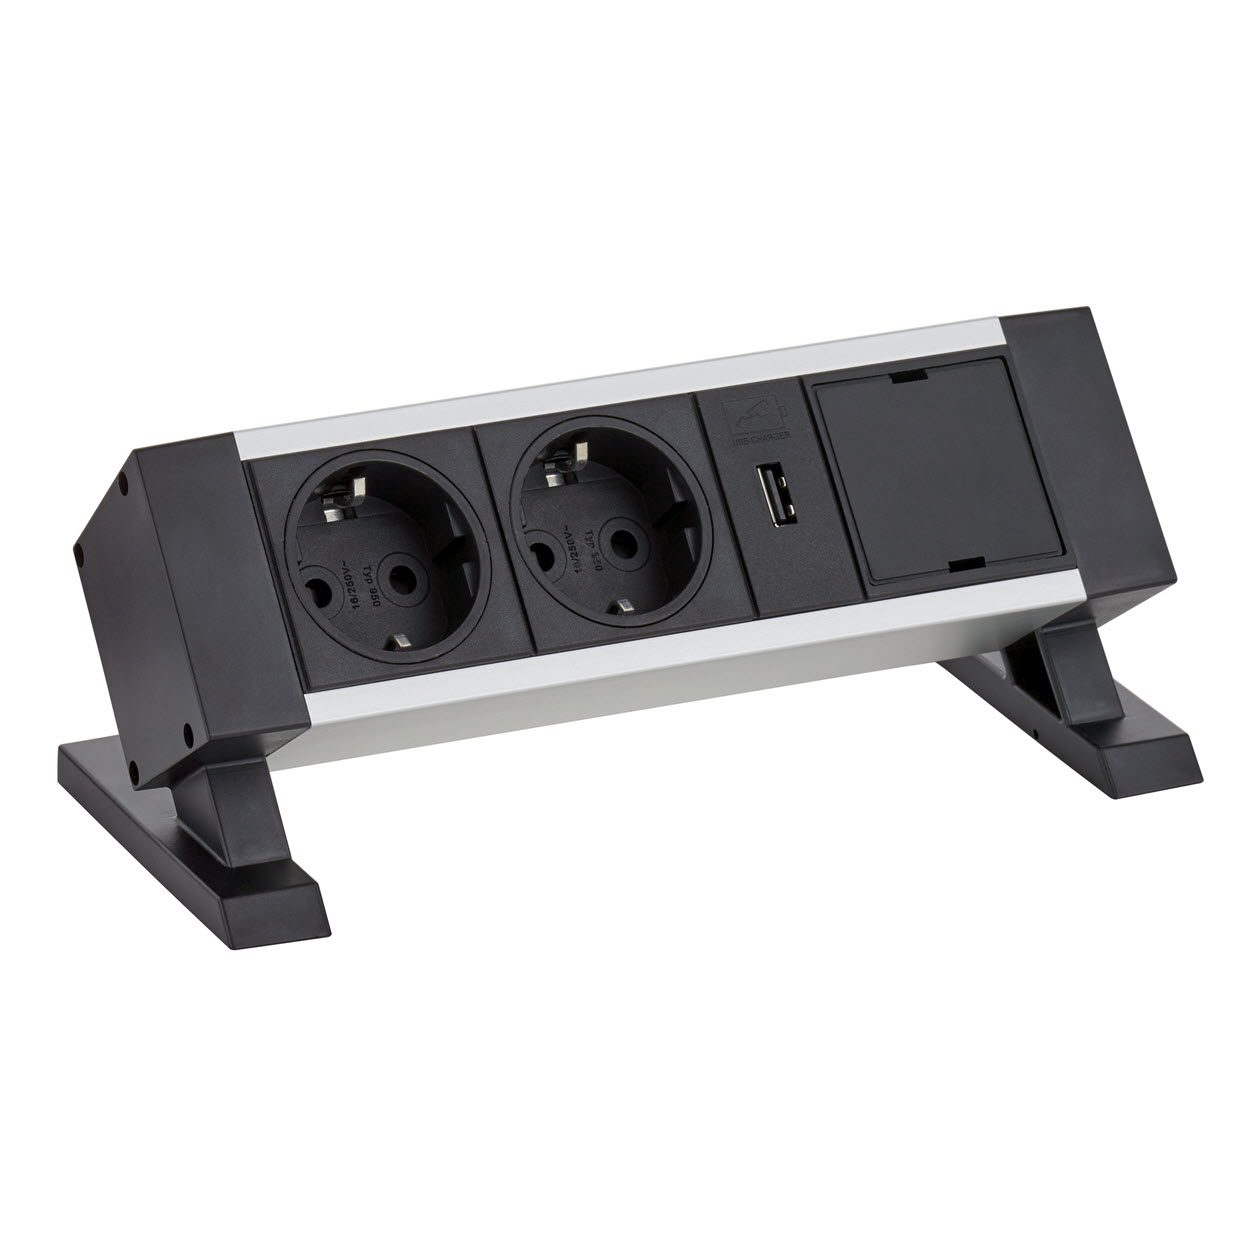 EVOline Dock Square -  2x power socket - 1x USB charger - Exchangeable Module - EVOlineStore